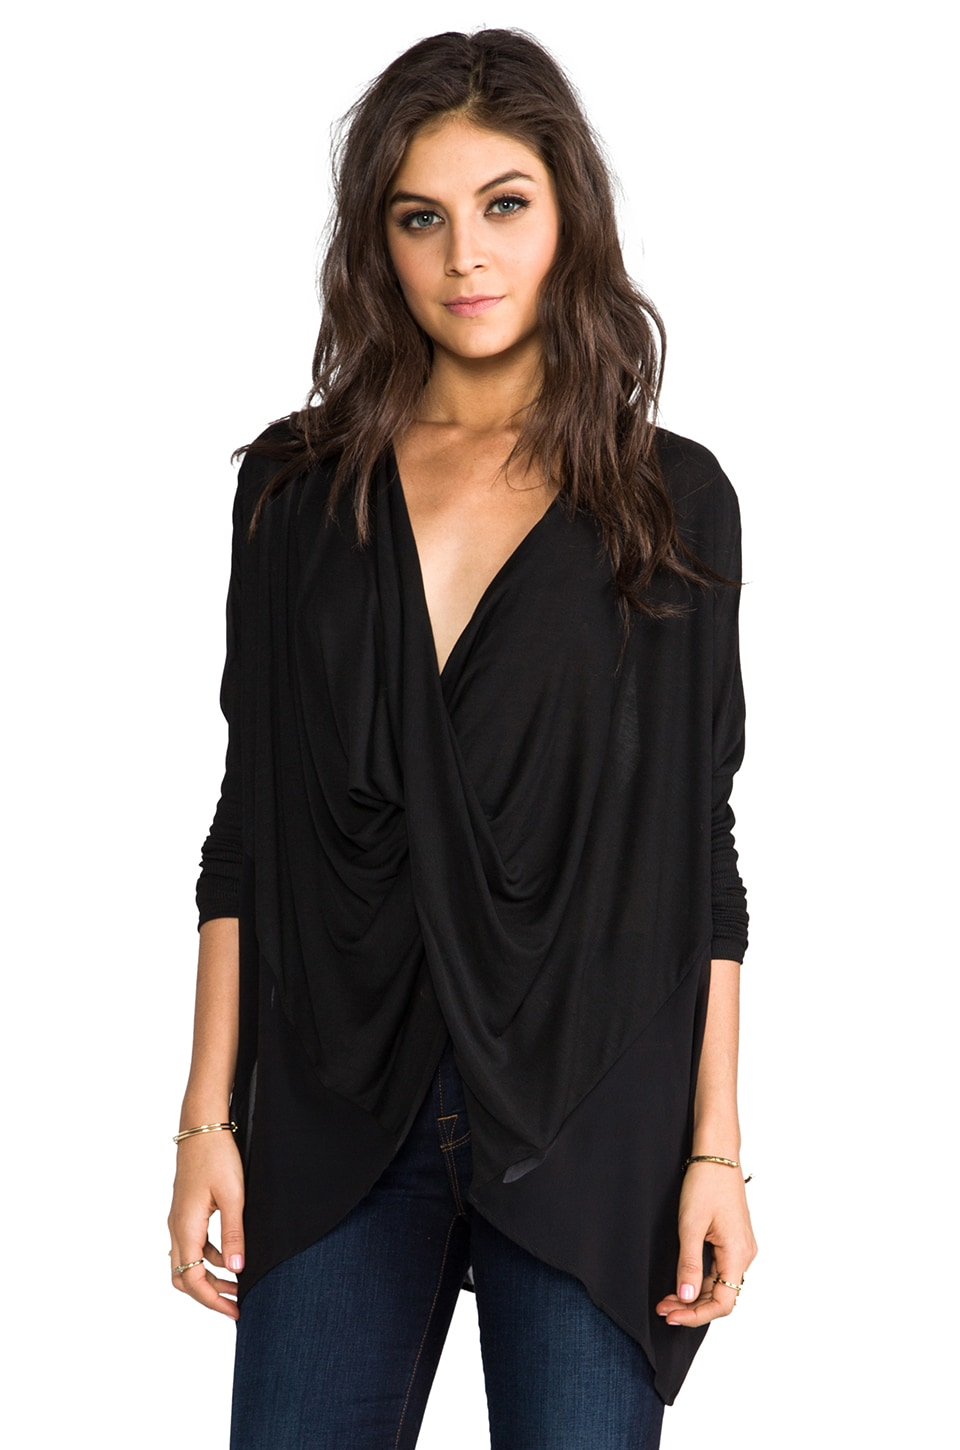 Velvet by Graham & Spencer Melange Drape Tempest Top in Black